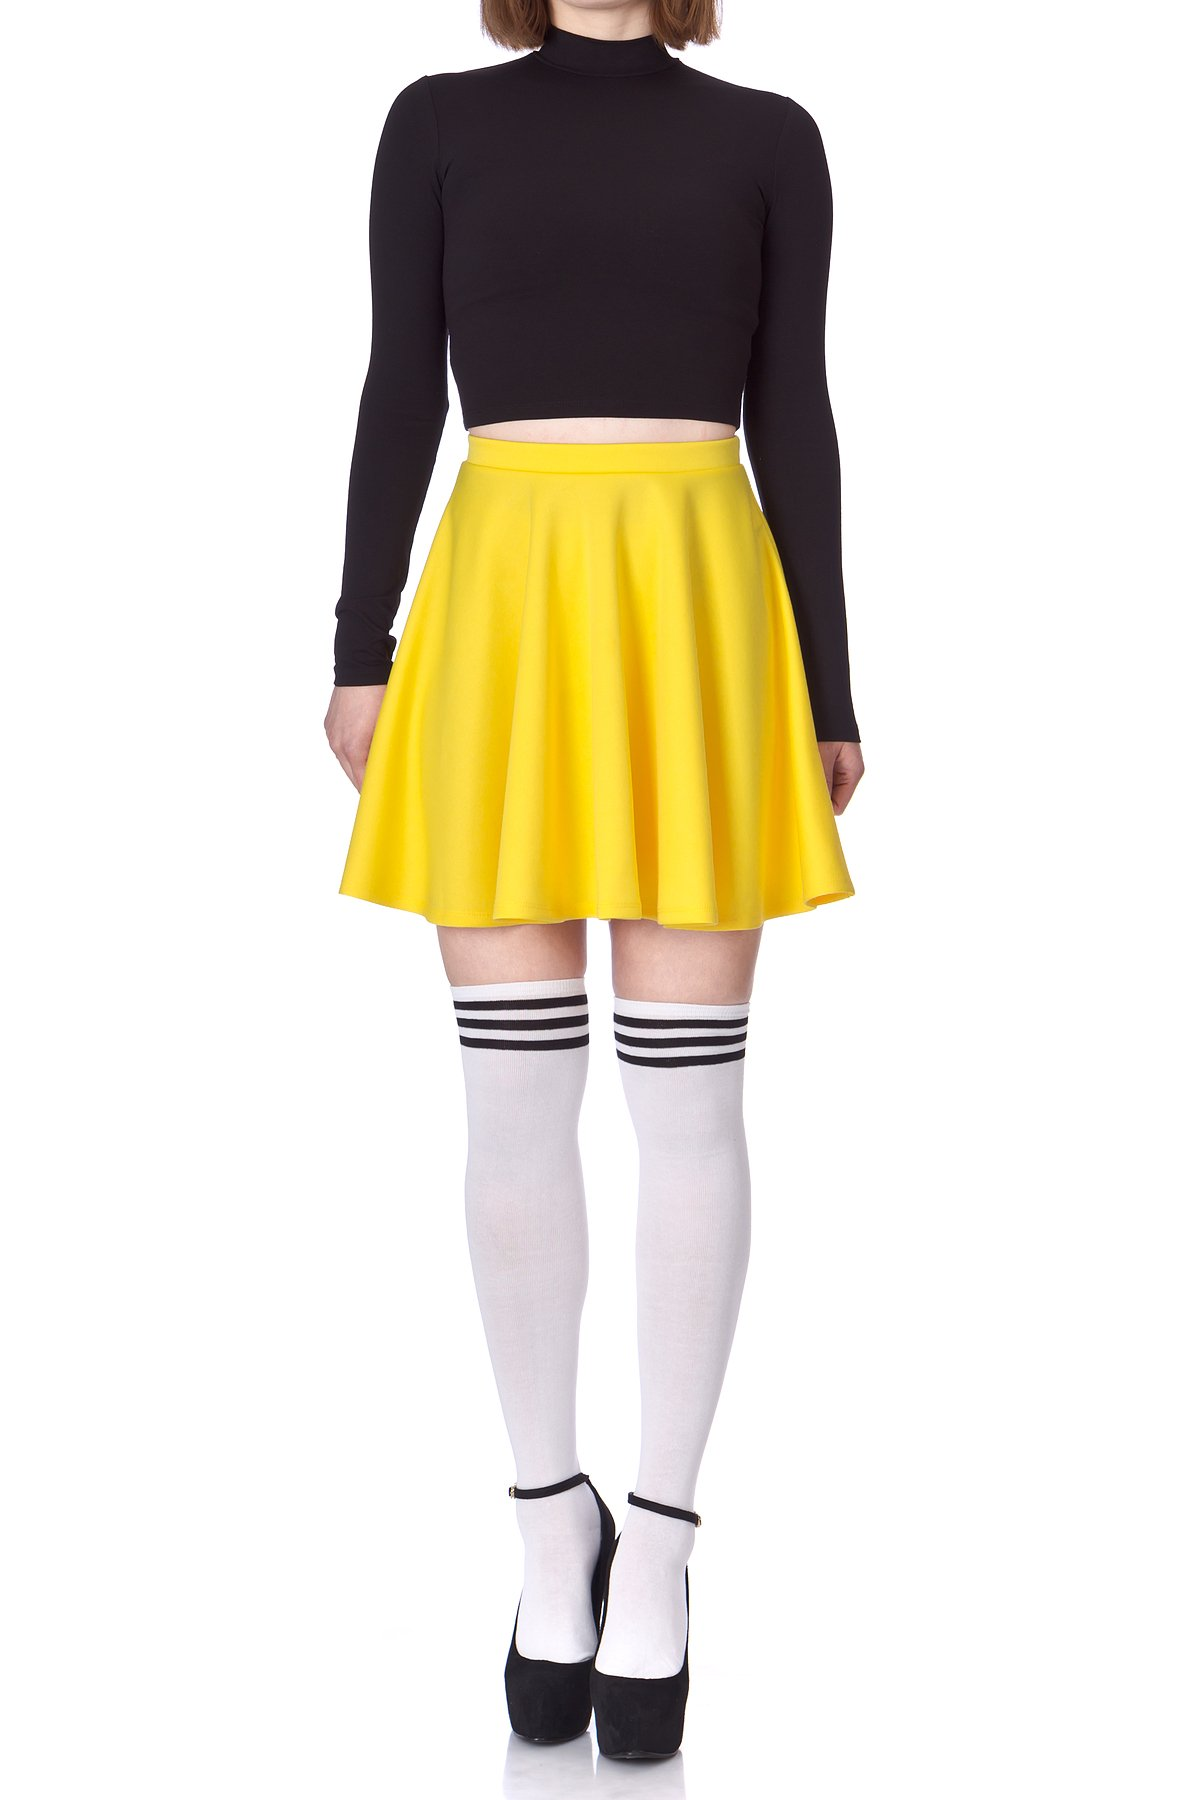 Flouncy High Waist A line Full Flared Circle Swing Dance Party Casual Skater Short Mini Skirt Yellow 02 1